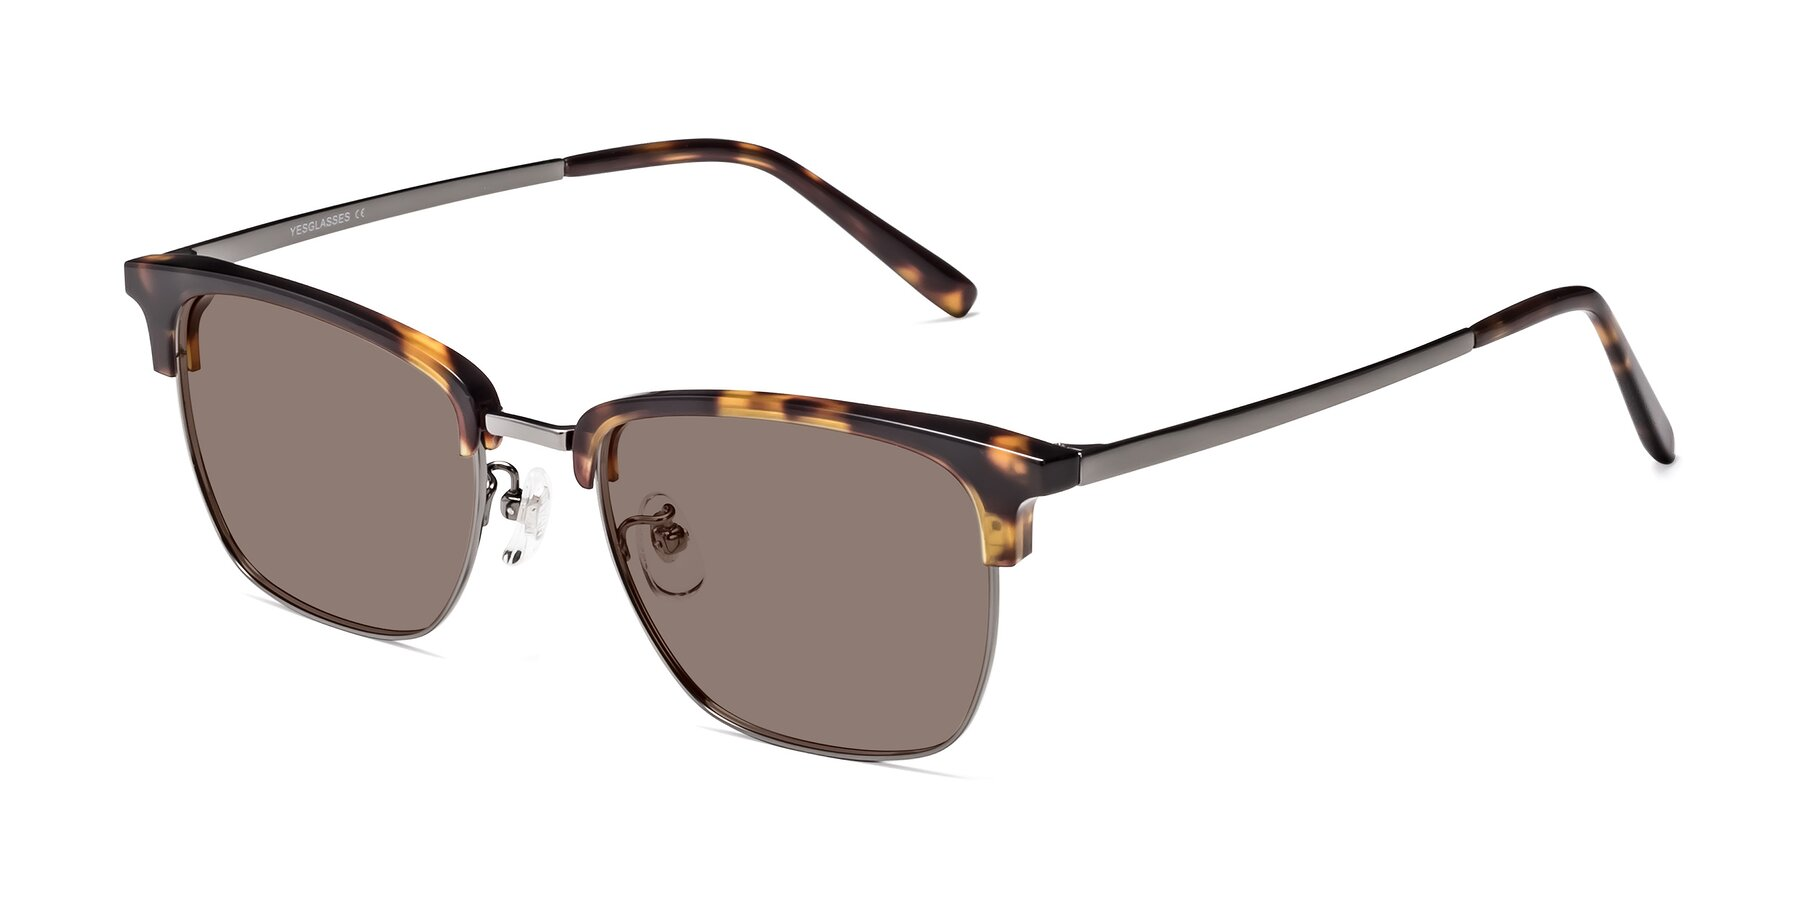 Angle of Milpa in Tortoise with Medium Brown Tinted Lenses